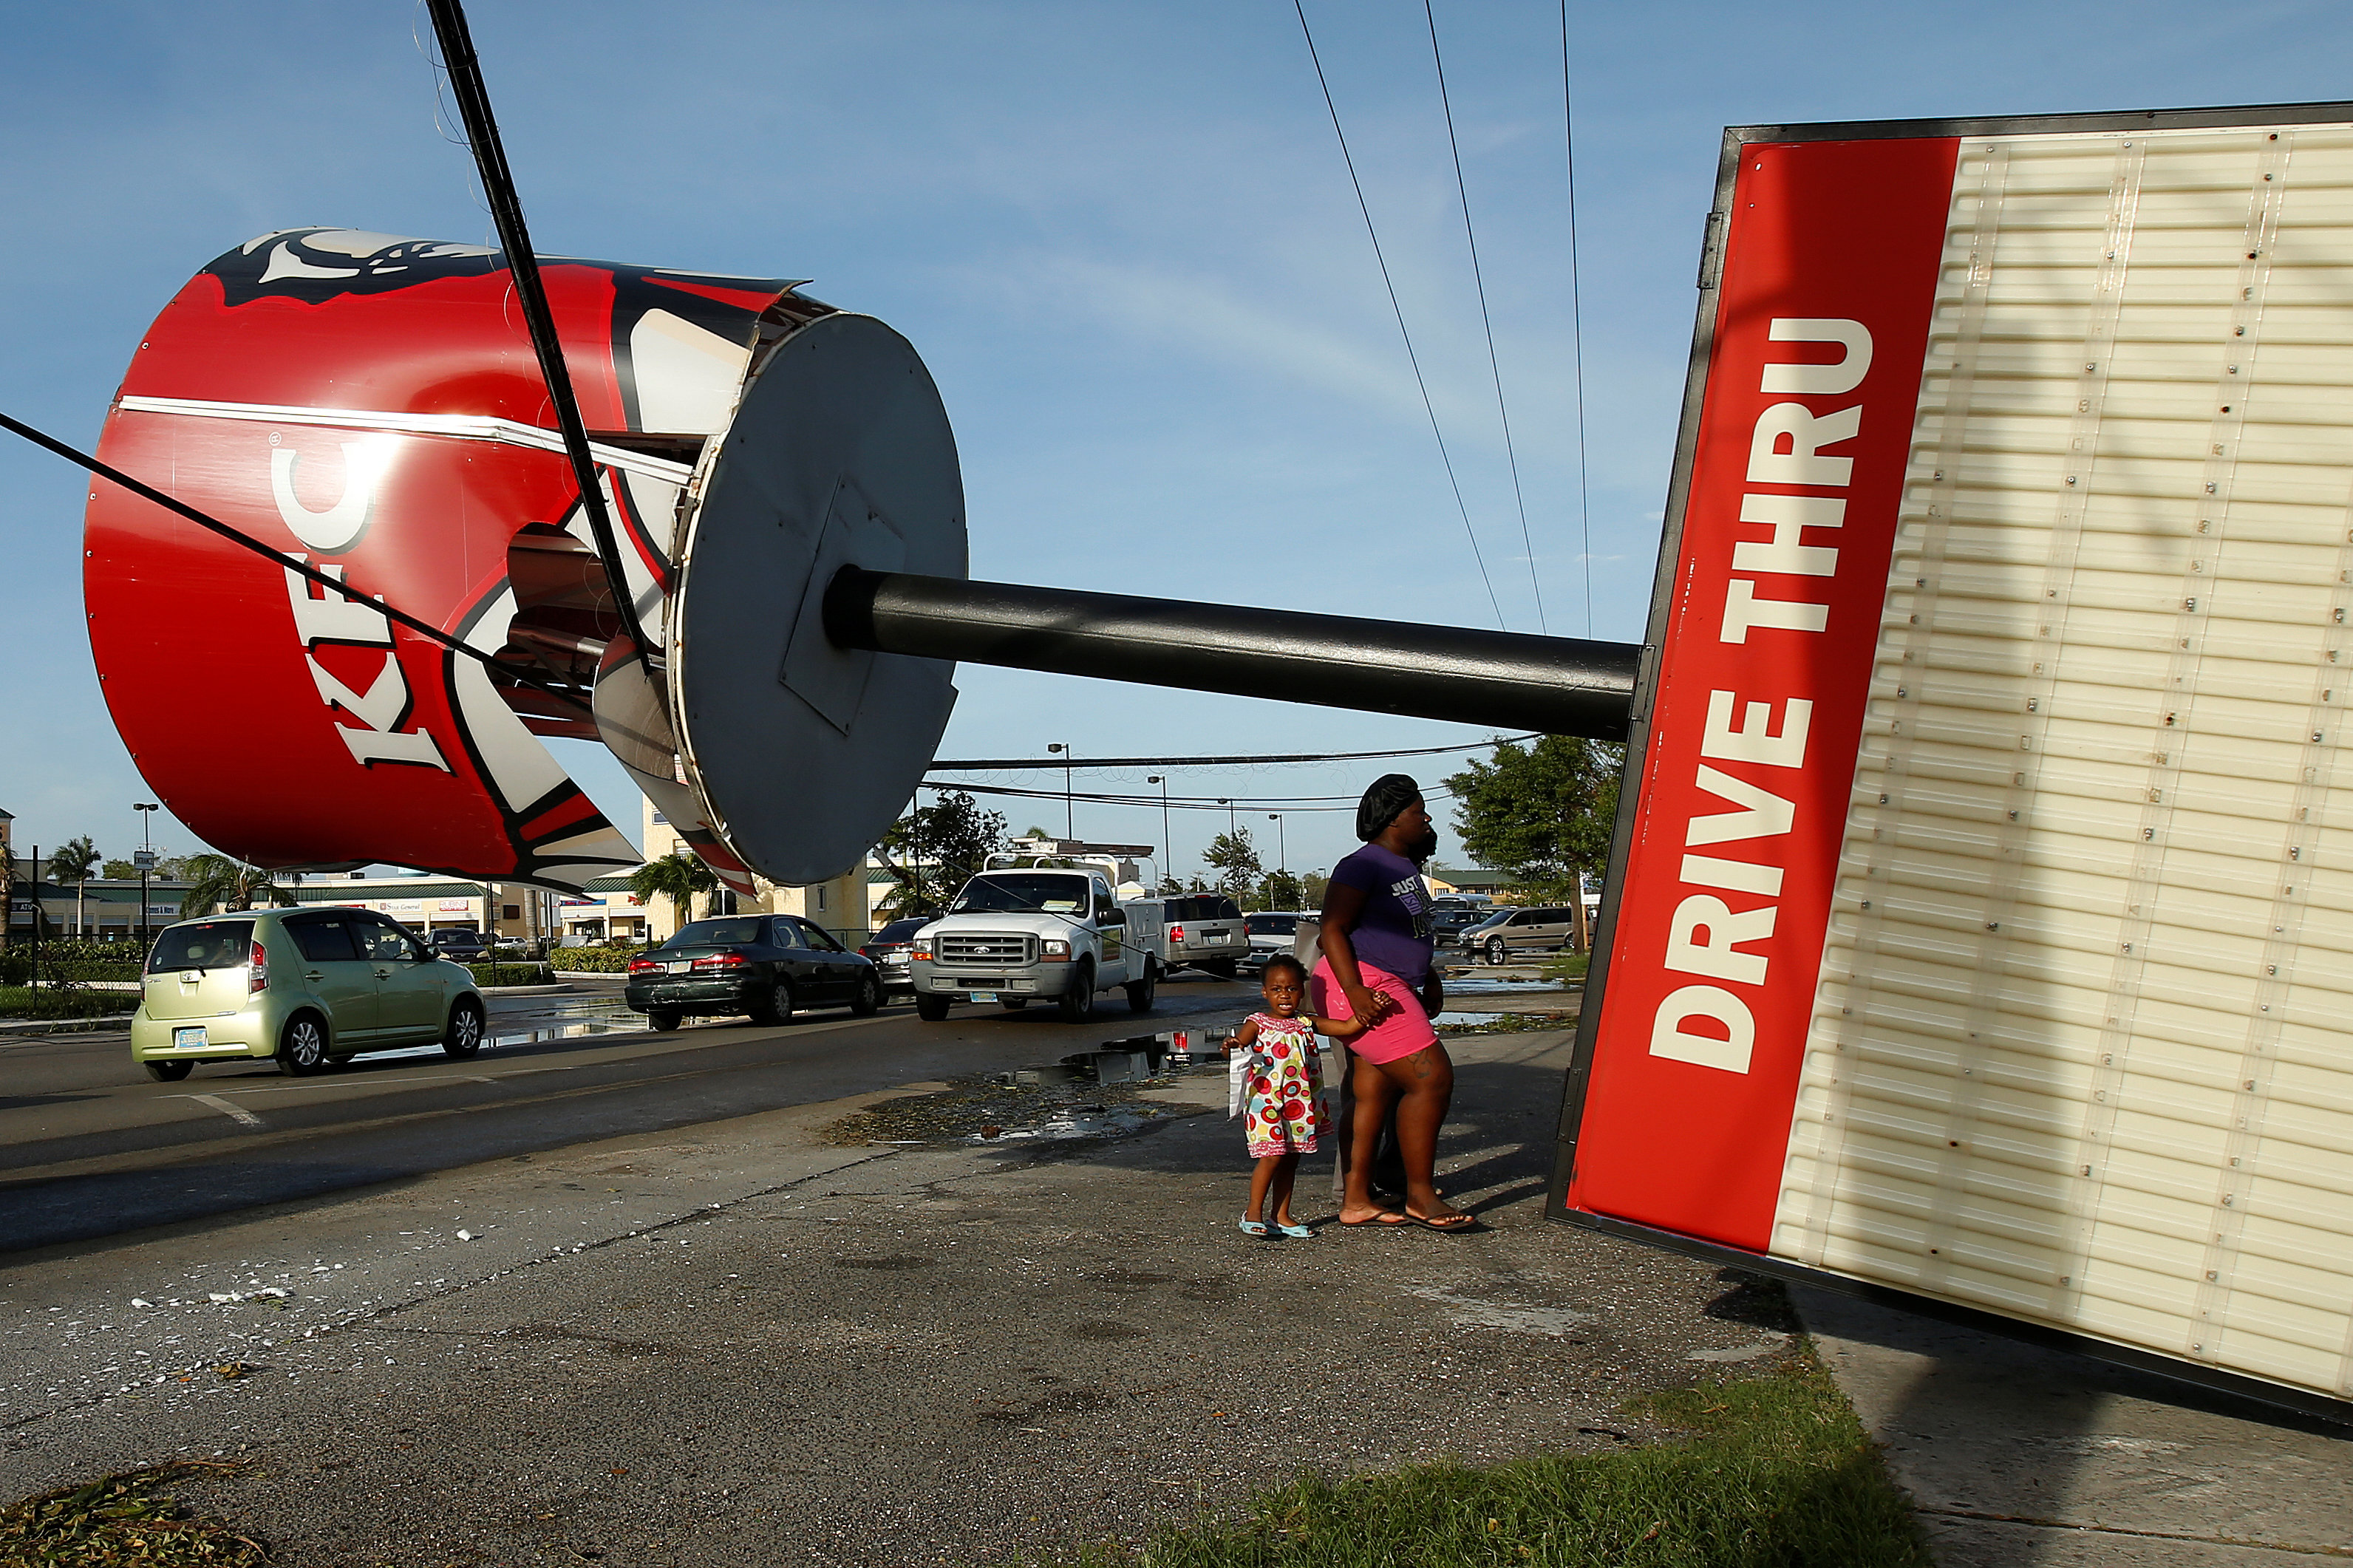 People walk under a broken Kentucky Fried Chicken sign that blew over in Hurricane Matthew in Nassau, Bahamas October 7, 2016. REUTERS/Carlo Allegri     TPX IMAGES OF THE DAY